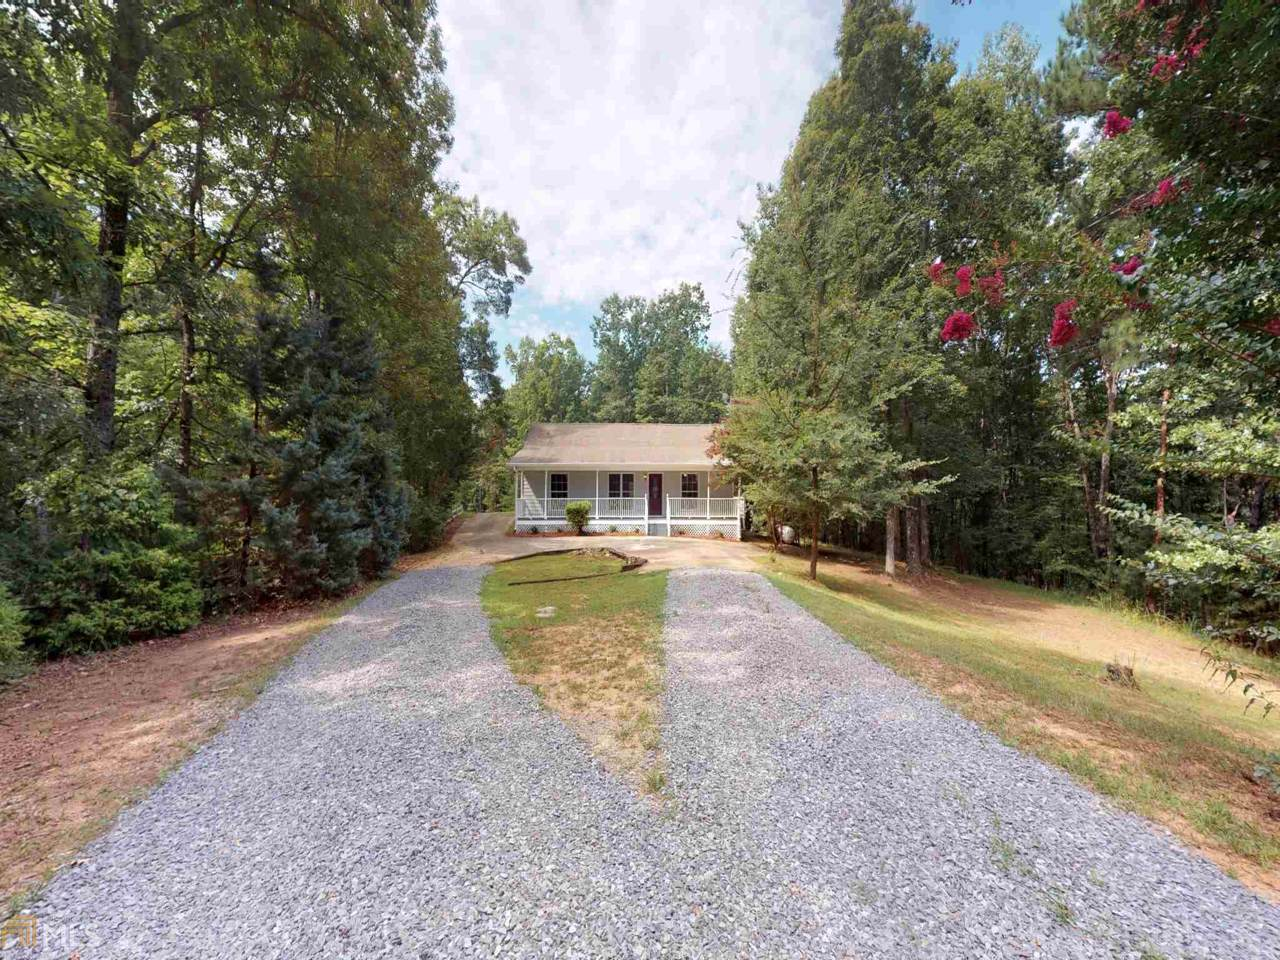 456 Shyers Ford Rd - Photo 1